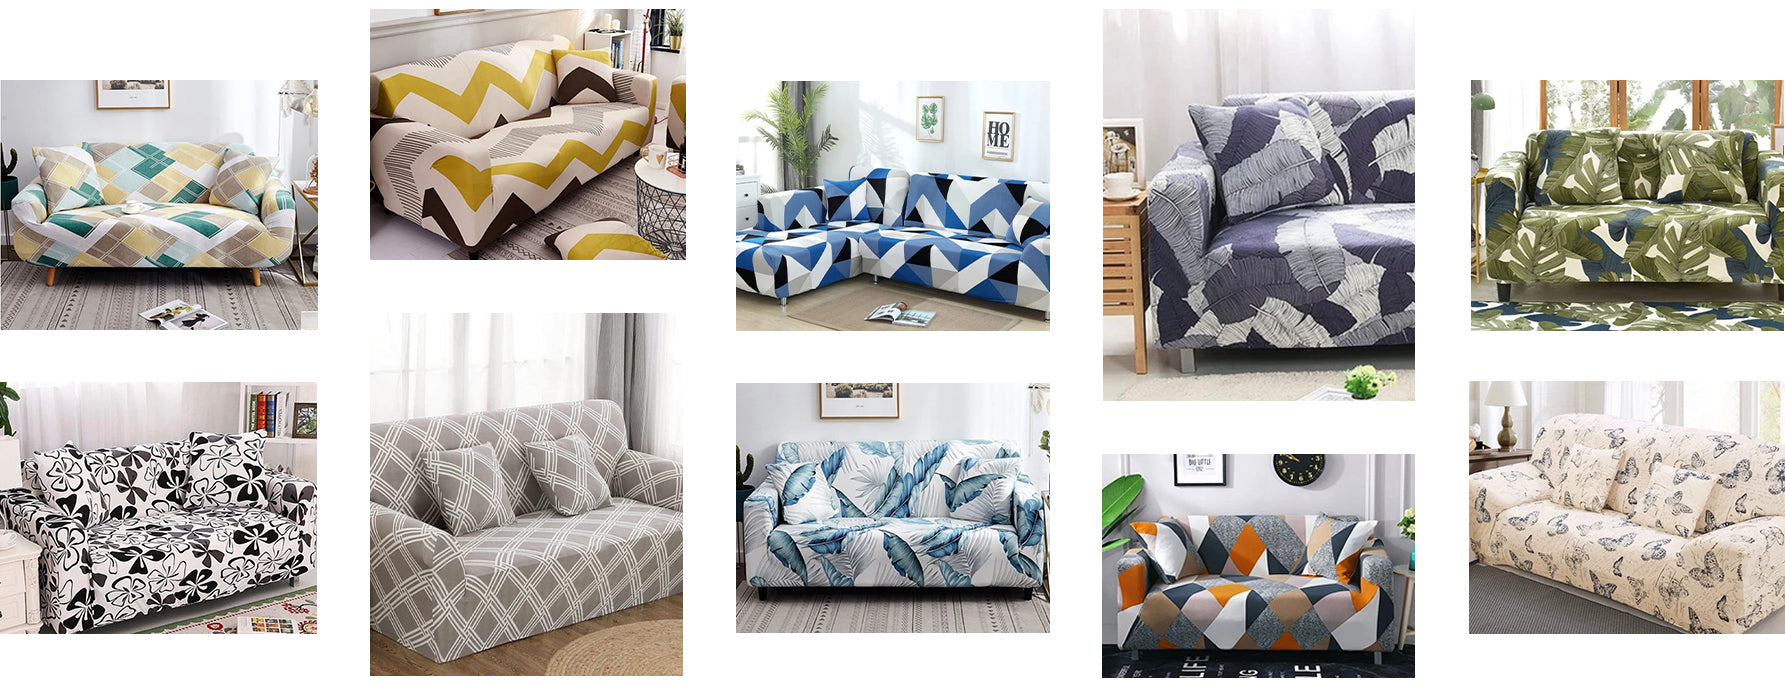 SofaPrint Sofa slipcovers